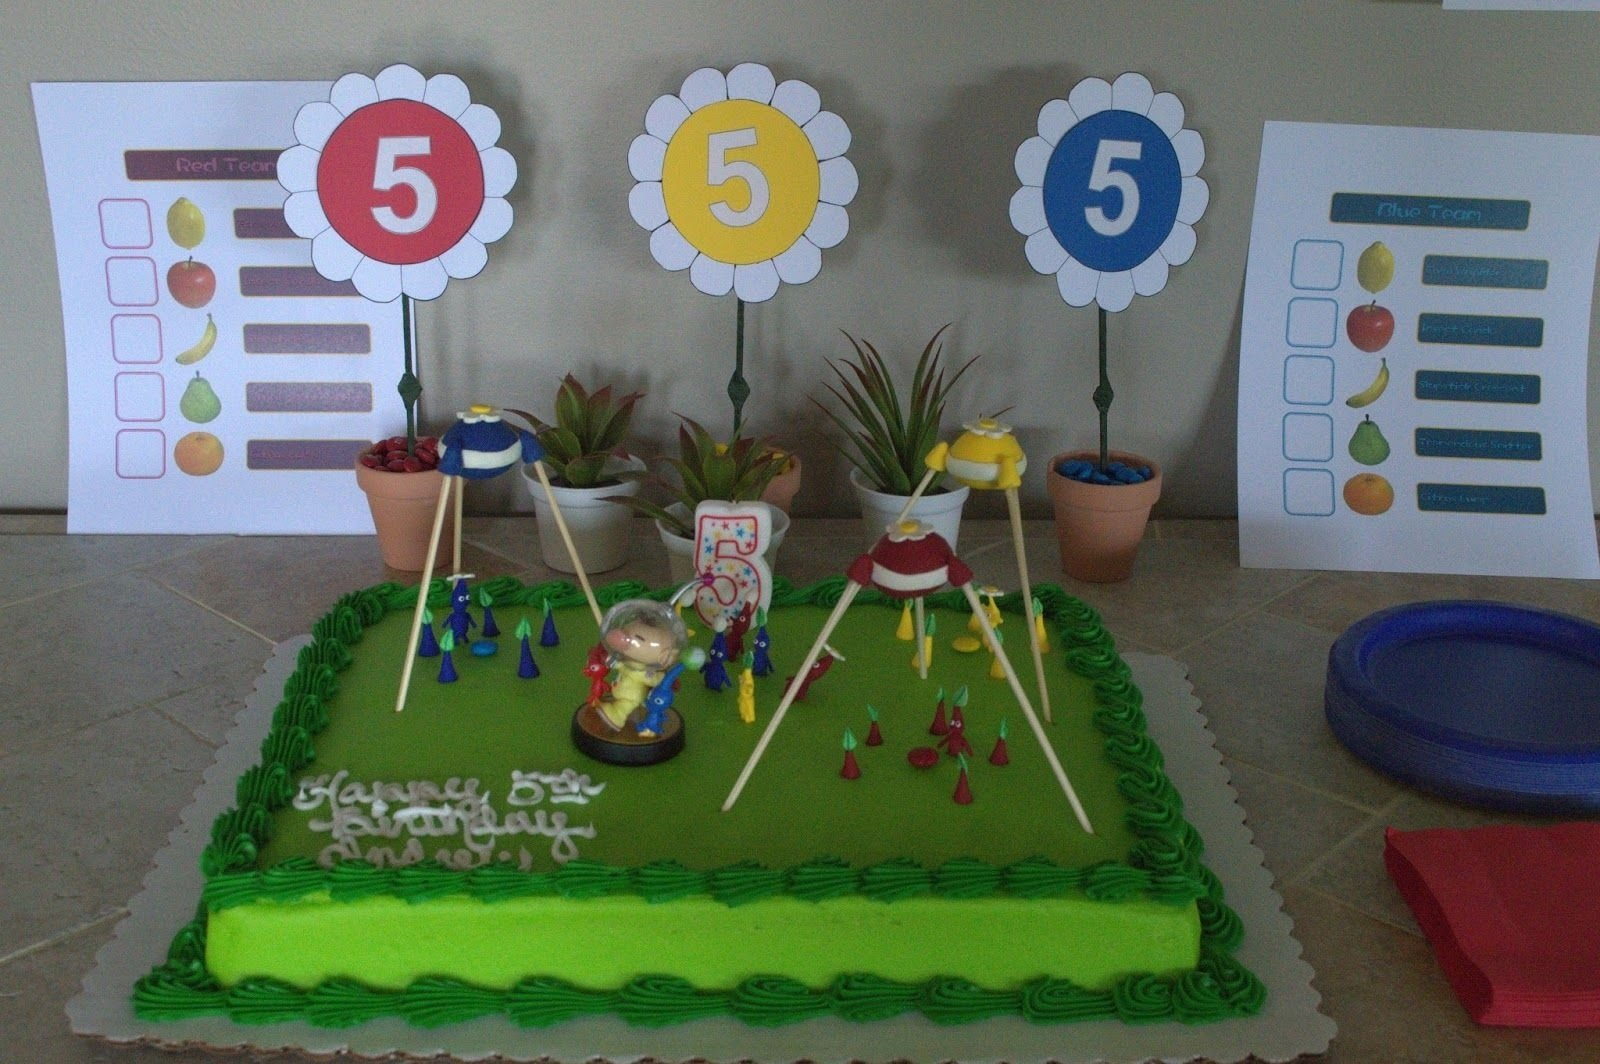 10 Stylish Birthday Party Ideas St. Louis andrews pikmin birthday party the caldwell family of st louis